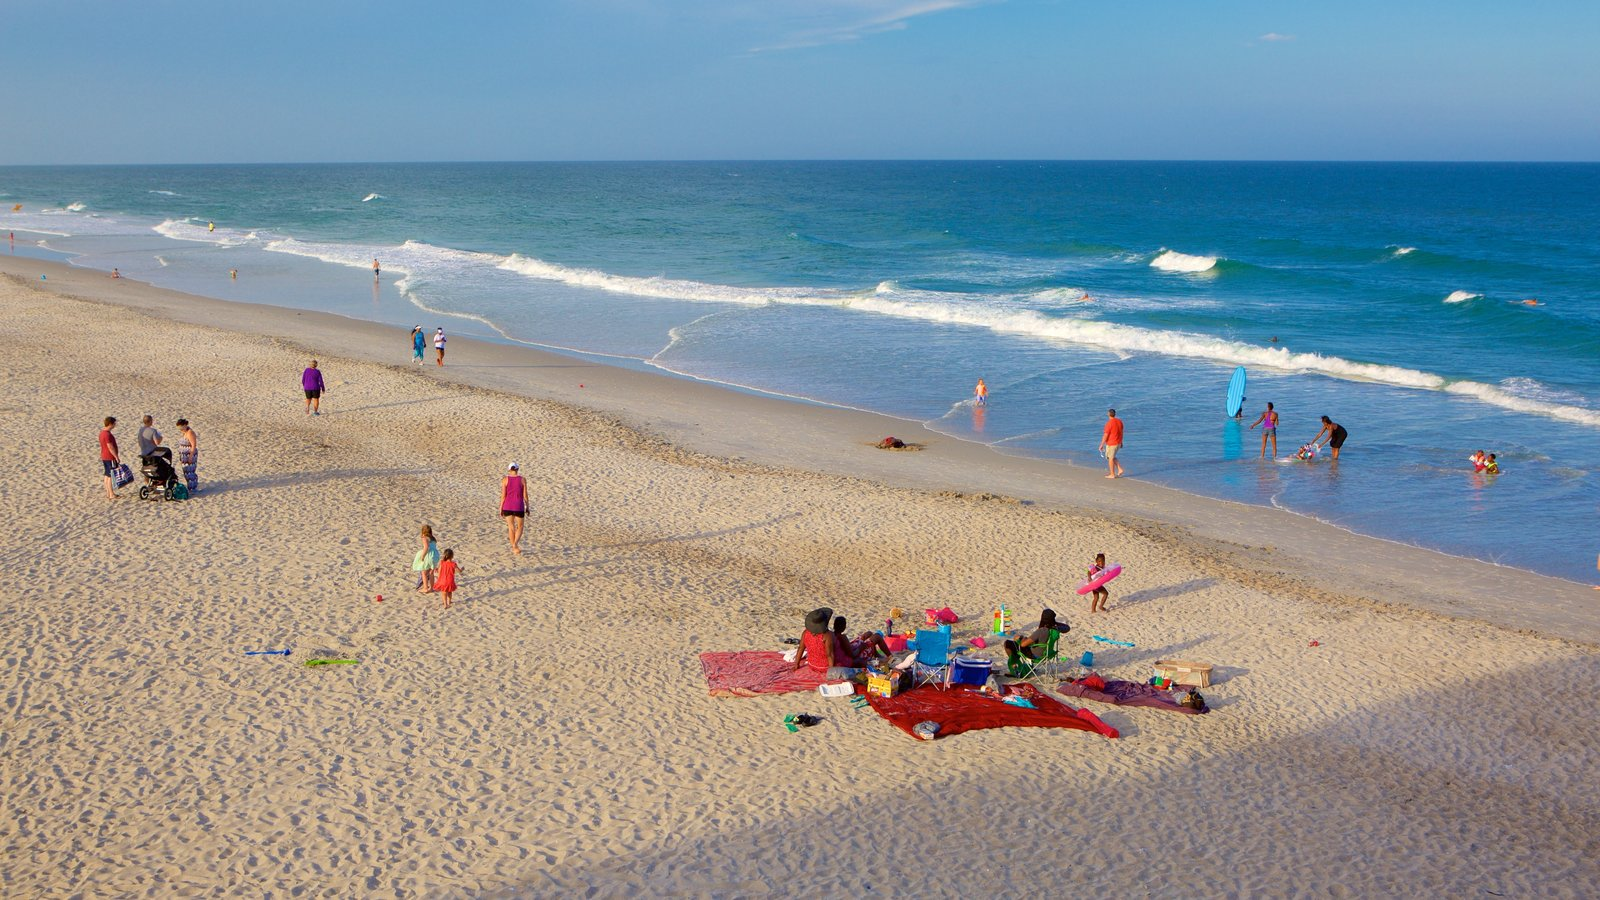 Wrightsville Beach which includes a beach and general coastal views as well as children